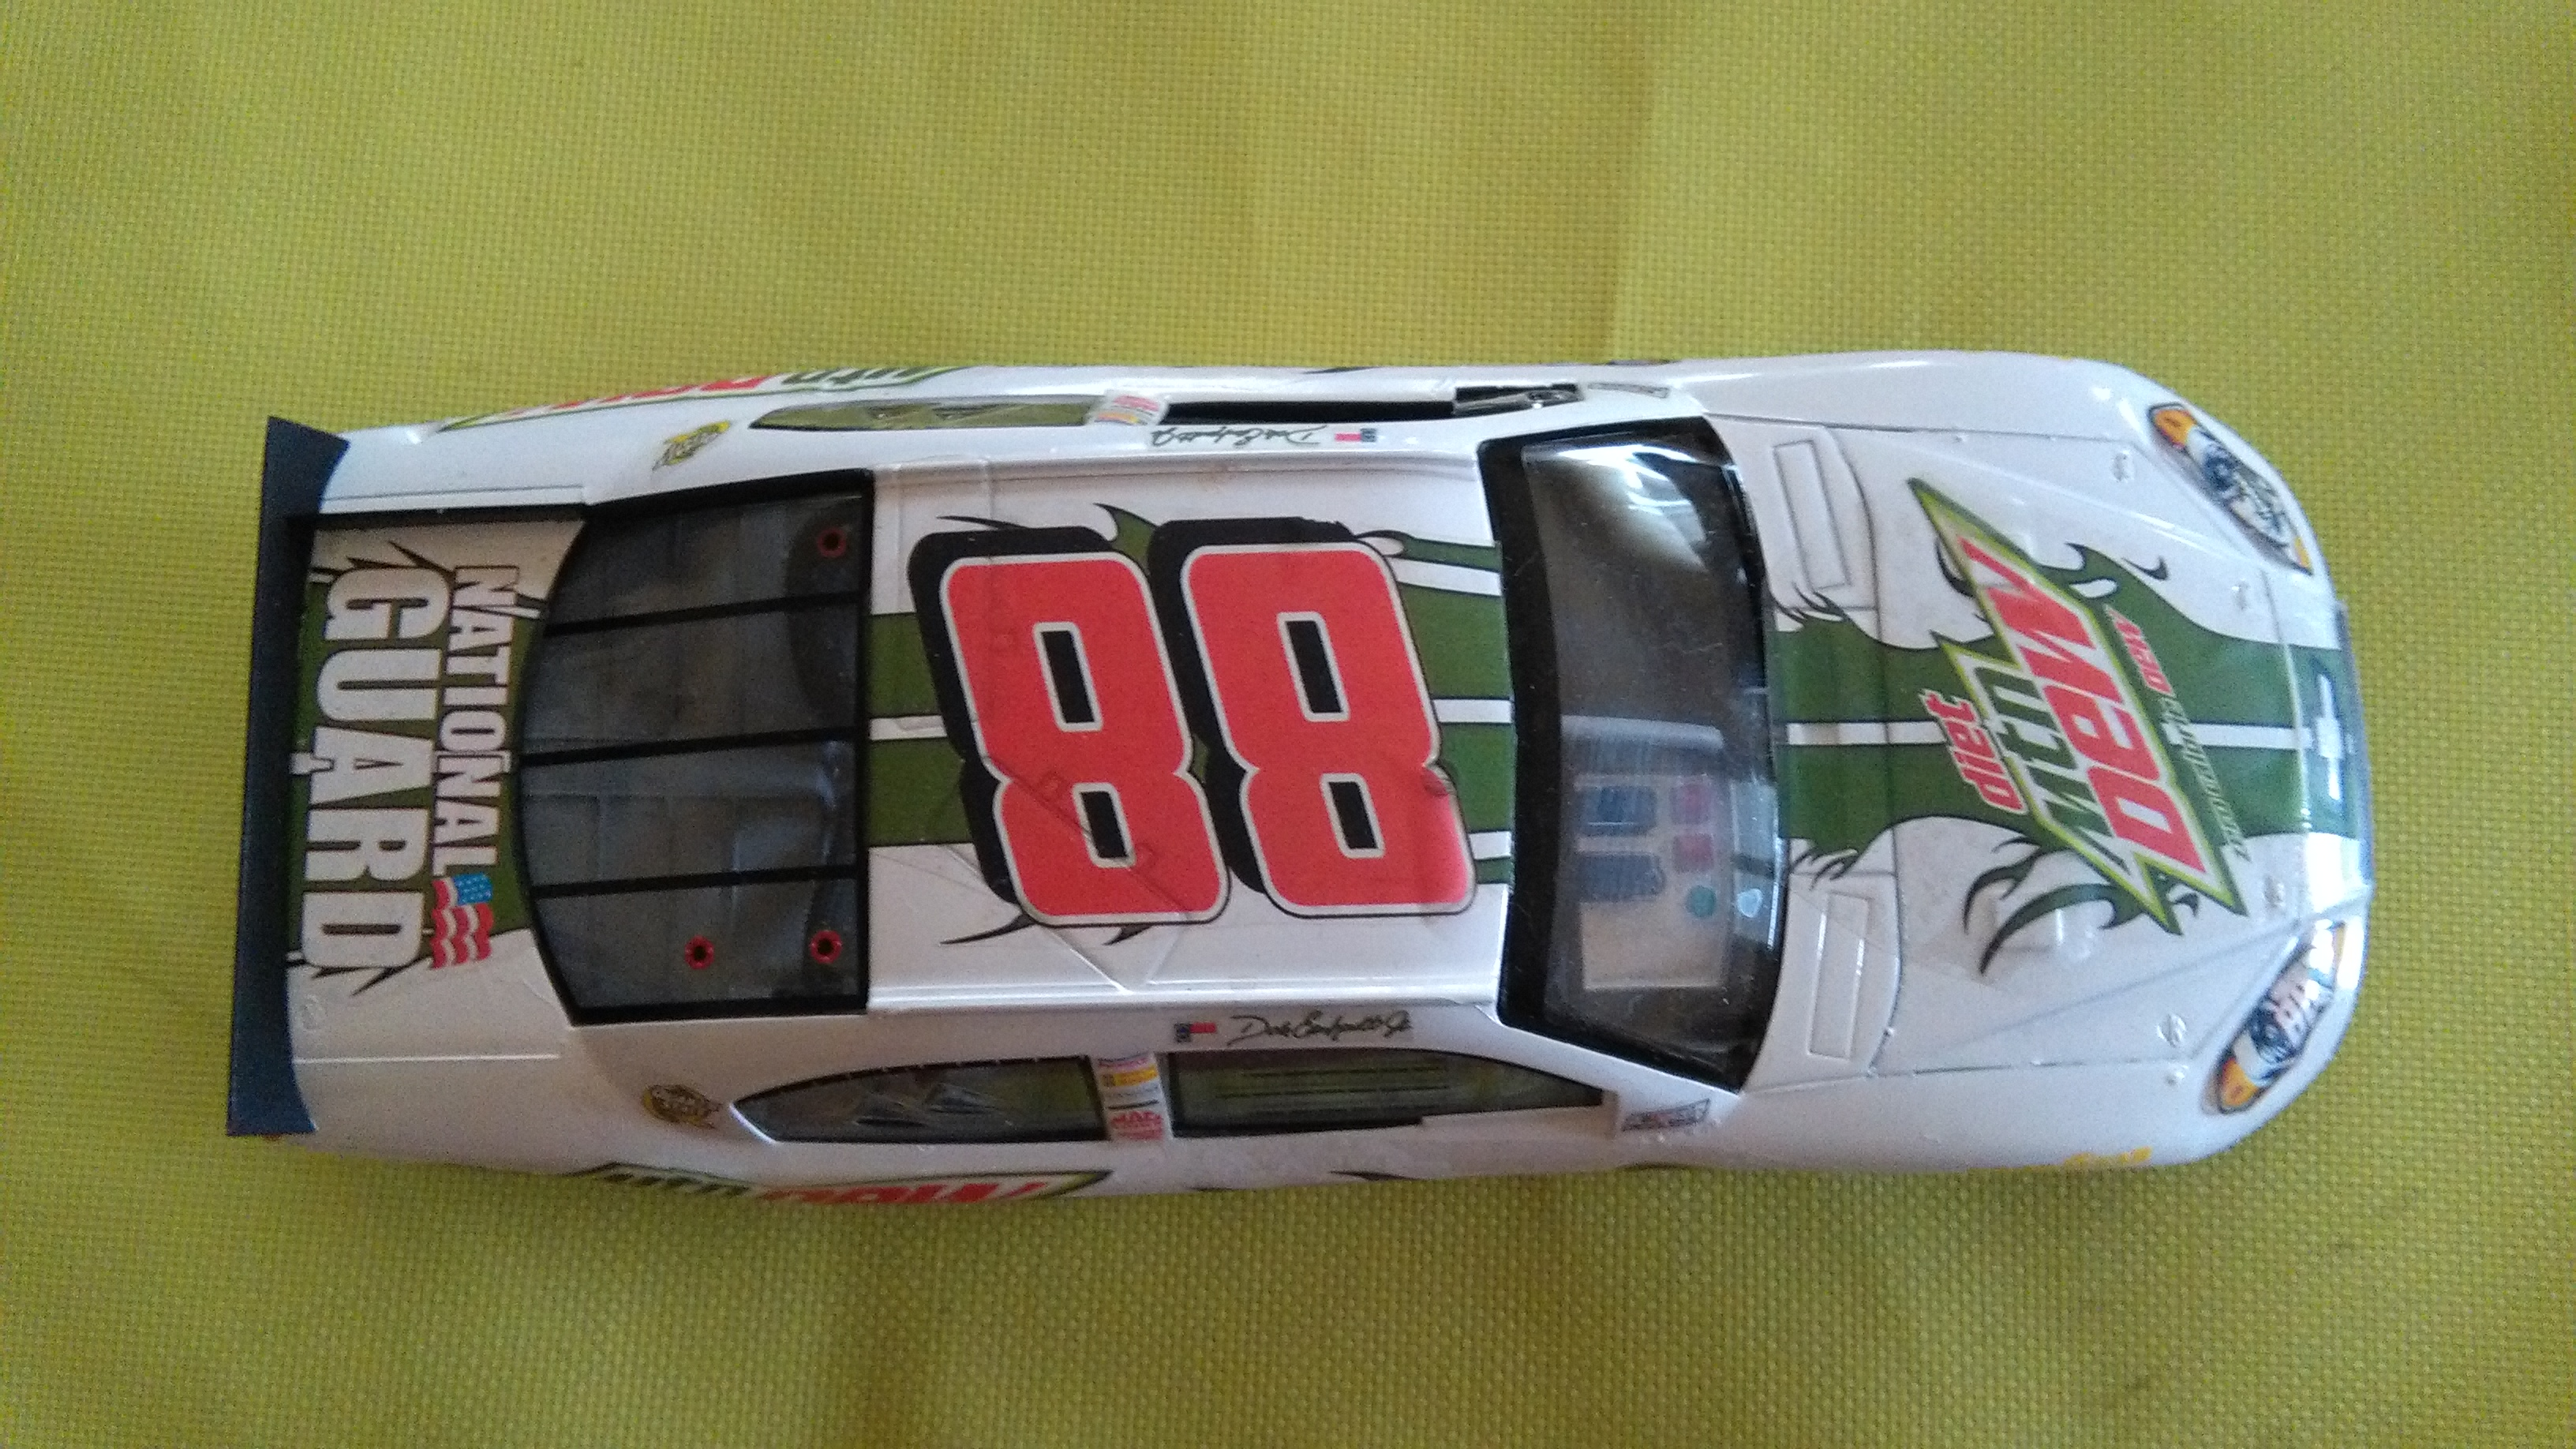 Chevy Impala 2010 #88 Earnhardt jr Mountain dew diet 578834IMG20160320150429